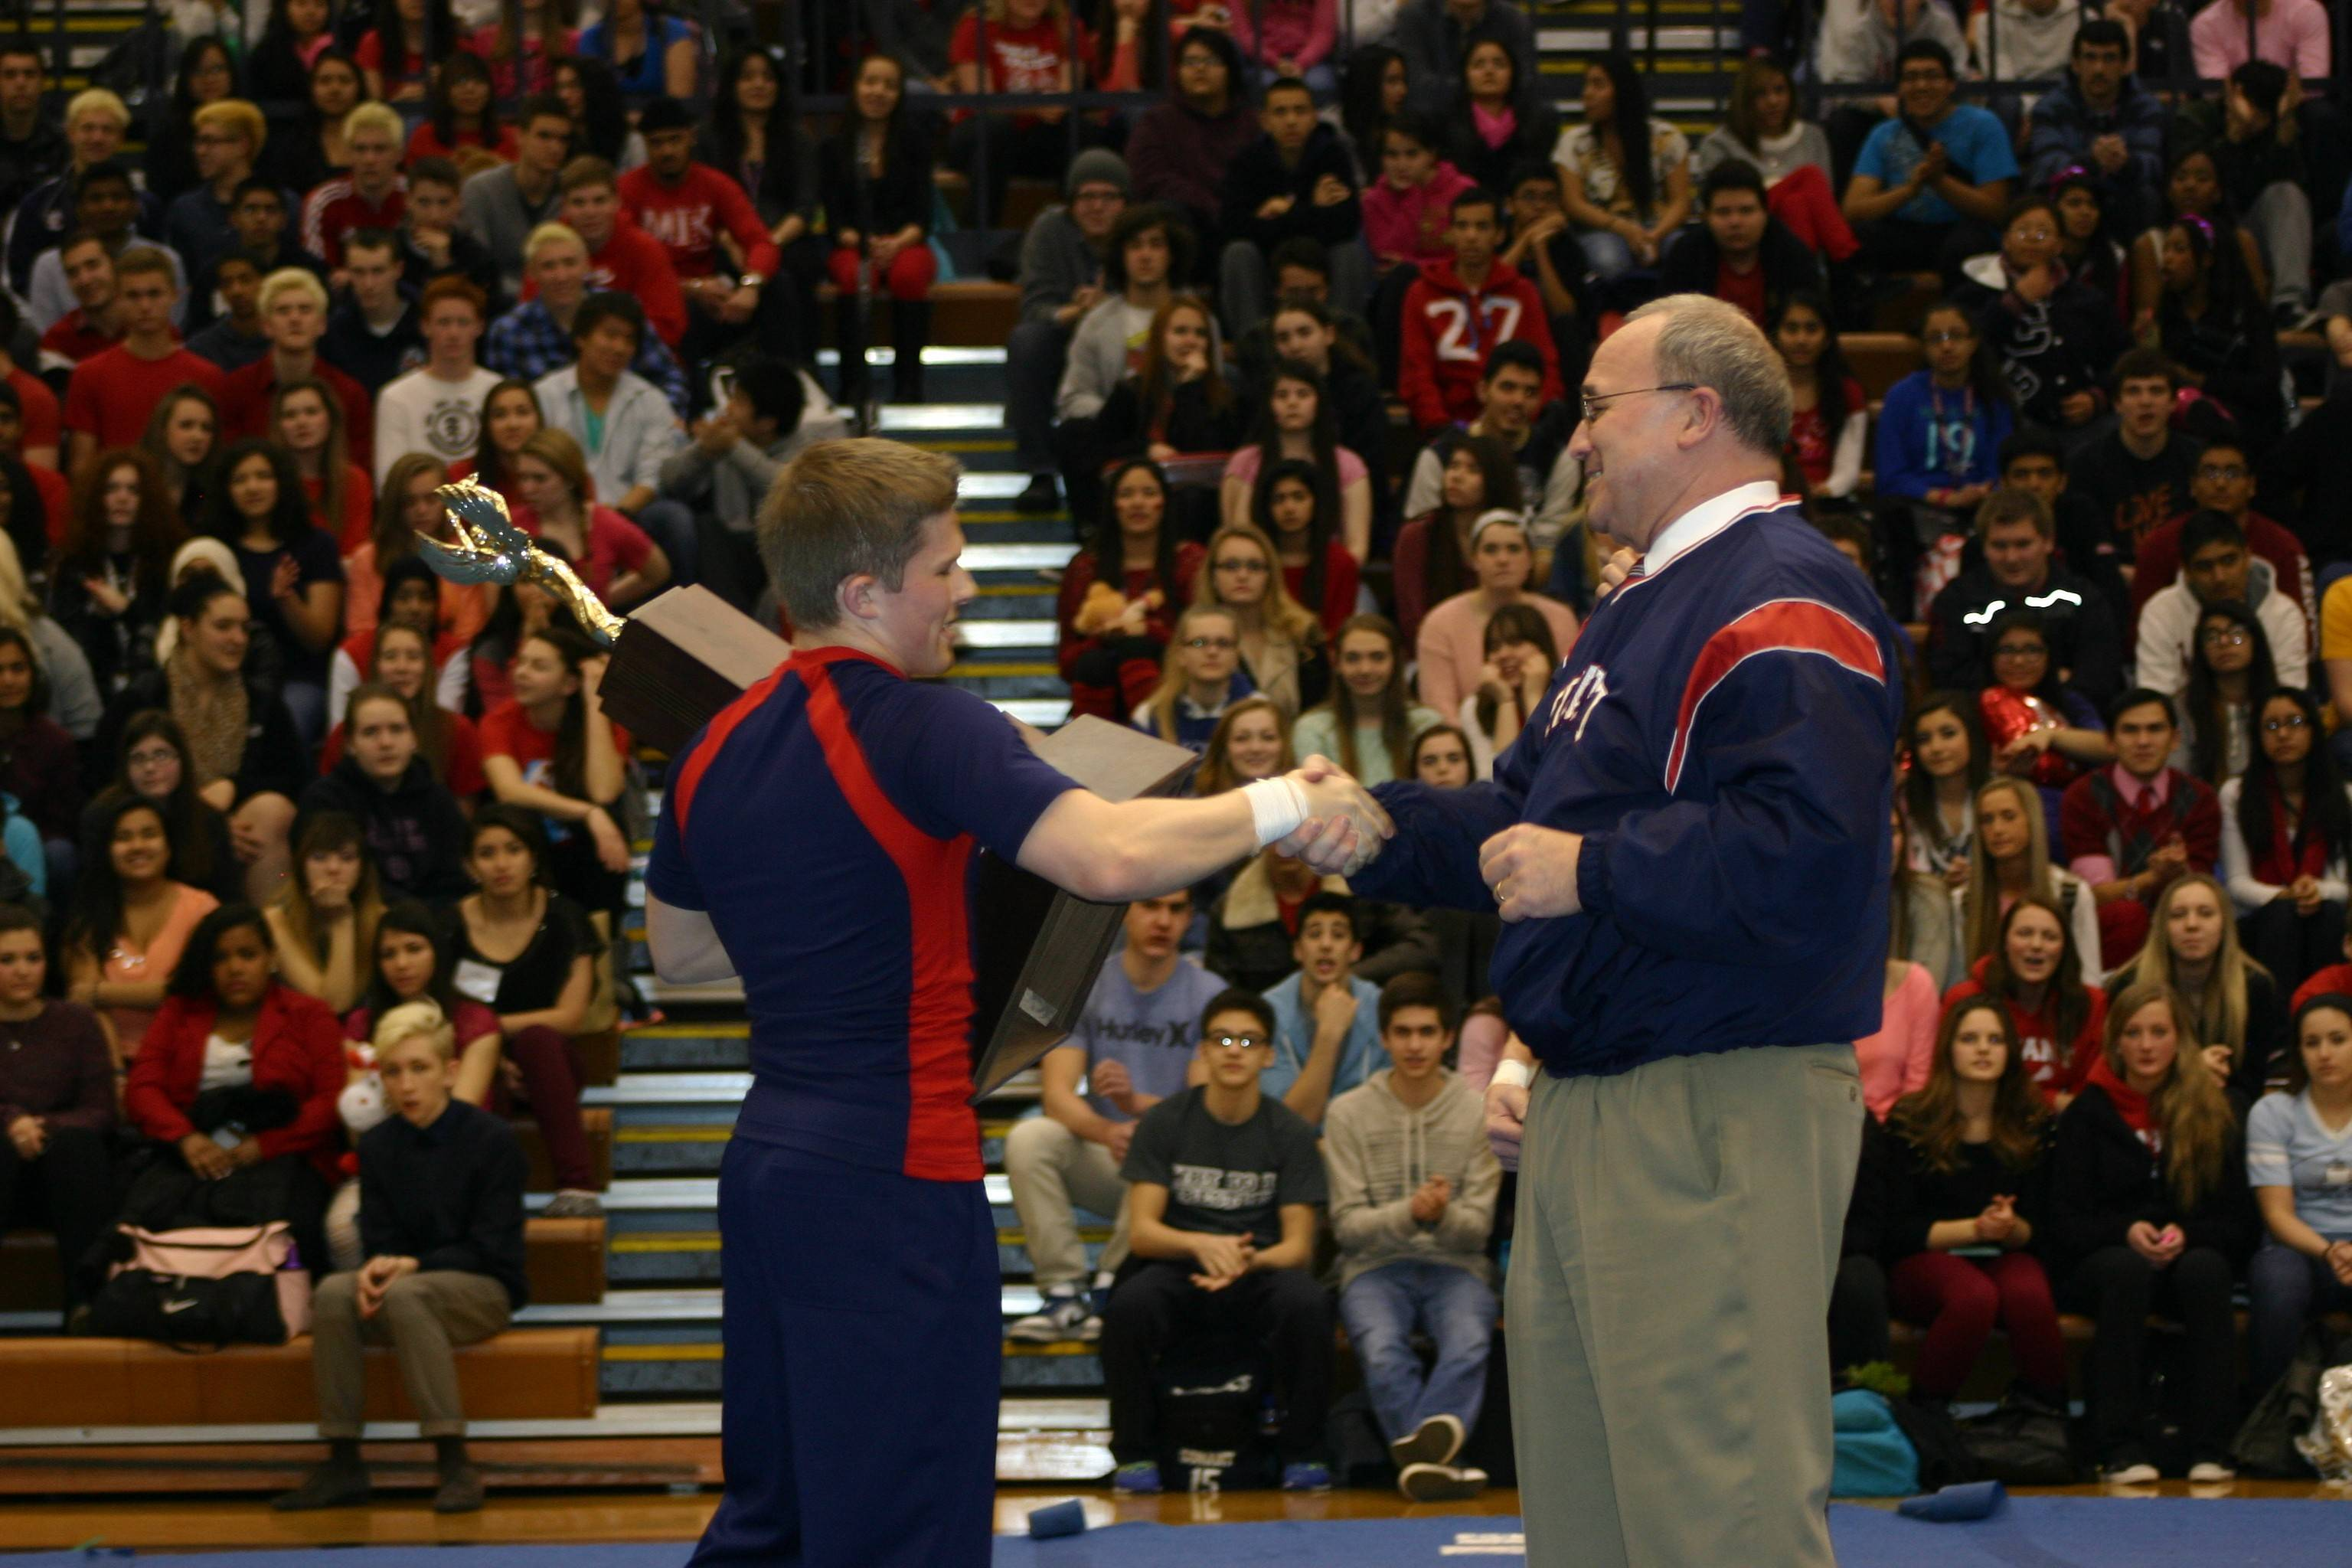 Conant senior cheerleader Scott Ruzanski presents Principal Tim Cannon with the state championship trophy at Friday's pep rally at the Hoffman Estates school. The coed squad performed its title-winning routine during the pep rally.